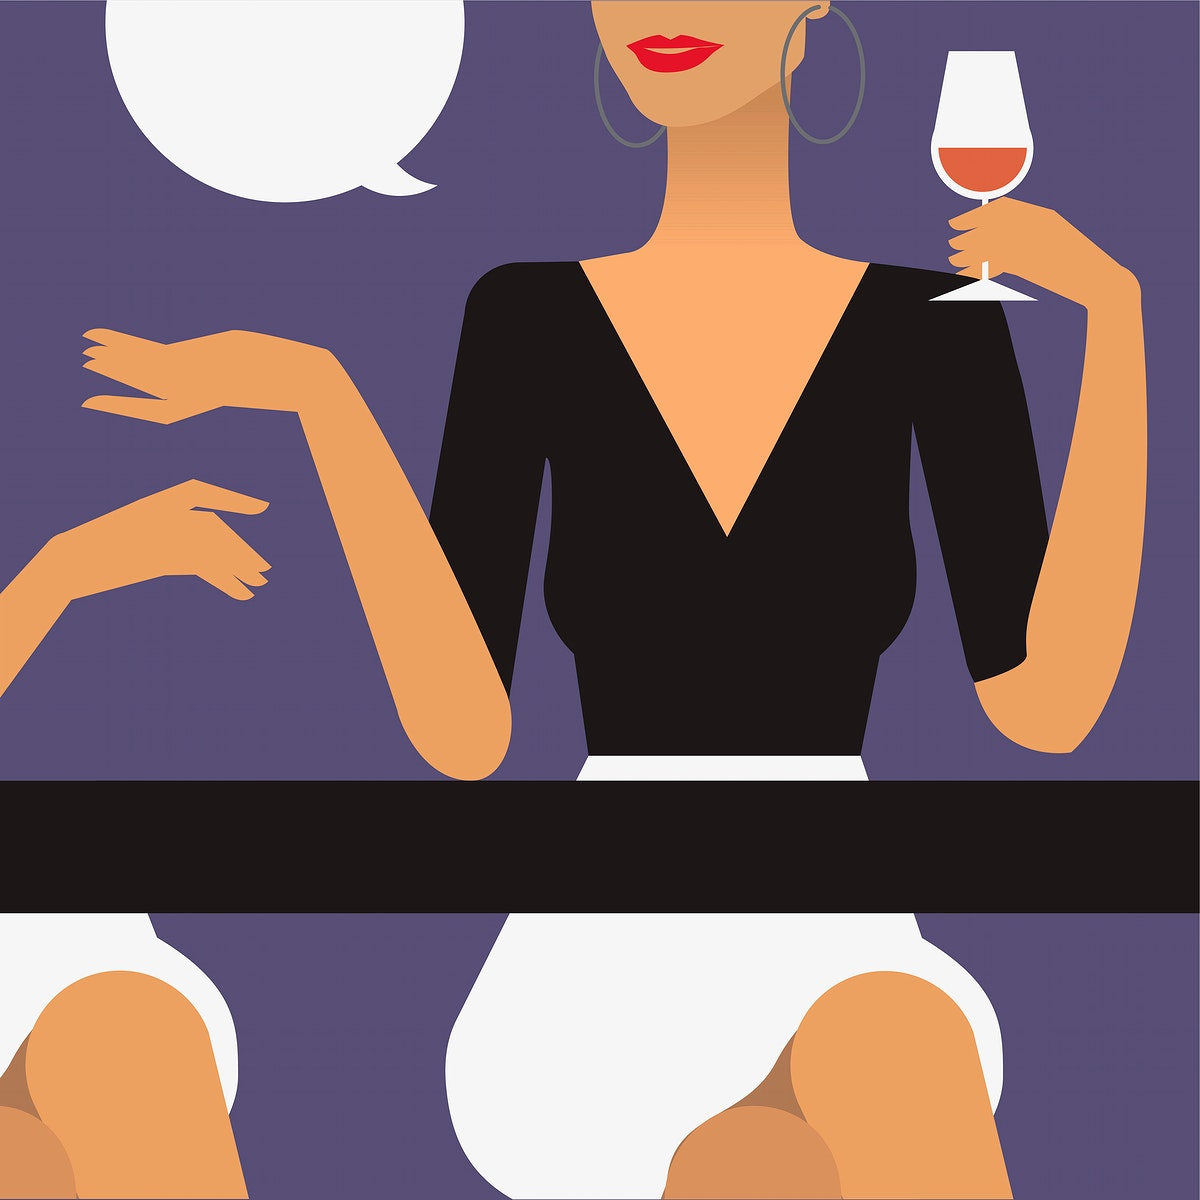 Woman at a party illustration